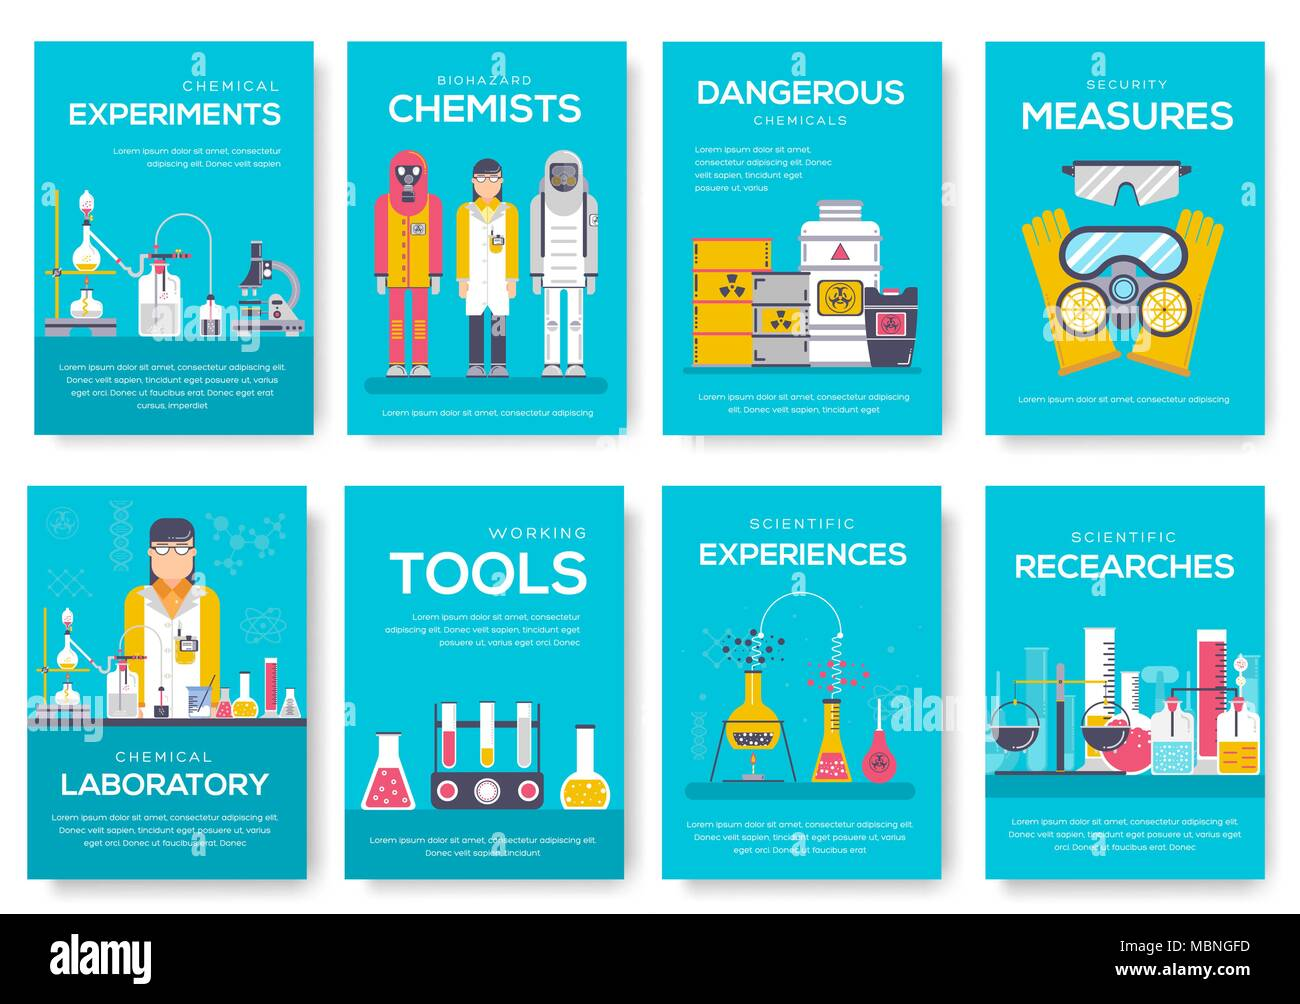 biohazard chemists brochure cards set chemistry lab template of